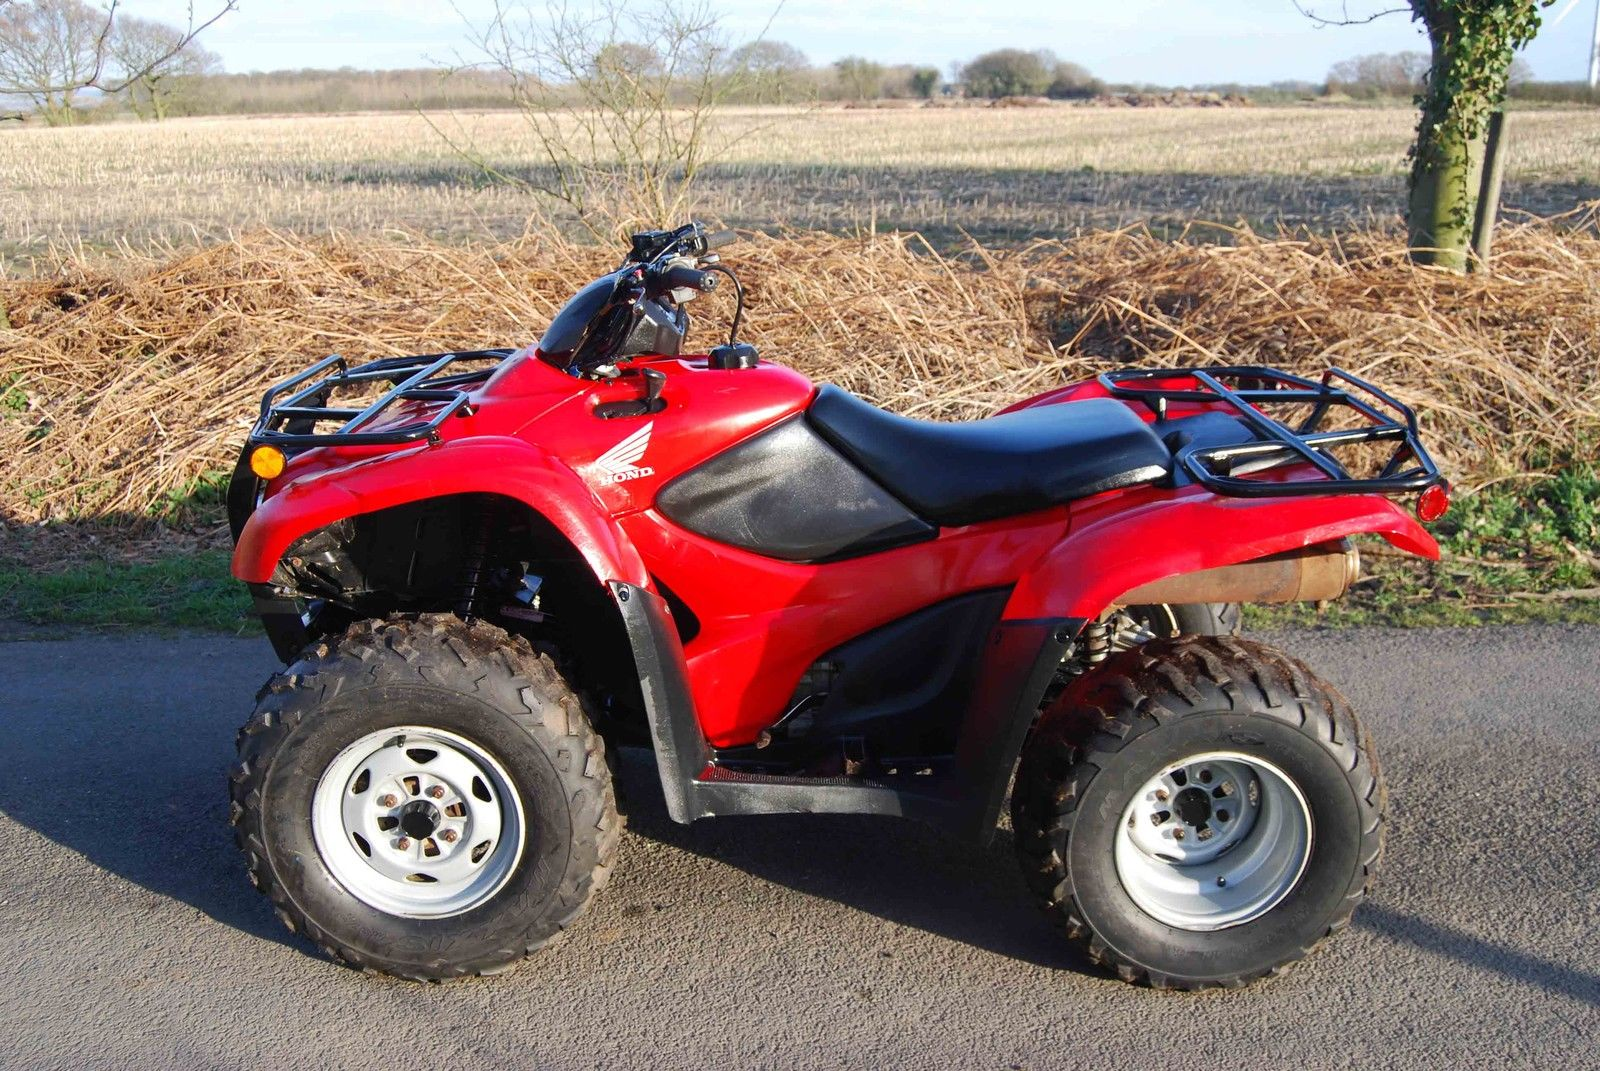 2007 Honda TRX680FA/FGA FOURTRAX RINCON/with GPScape OWNER'S MANUAL FOR  OFF-ROAD USE ONLY This vehicle is designed and manufactured for off-road  use only.